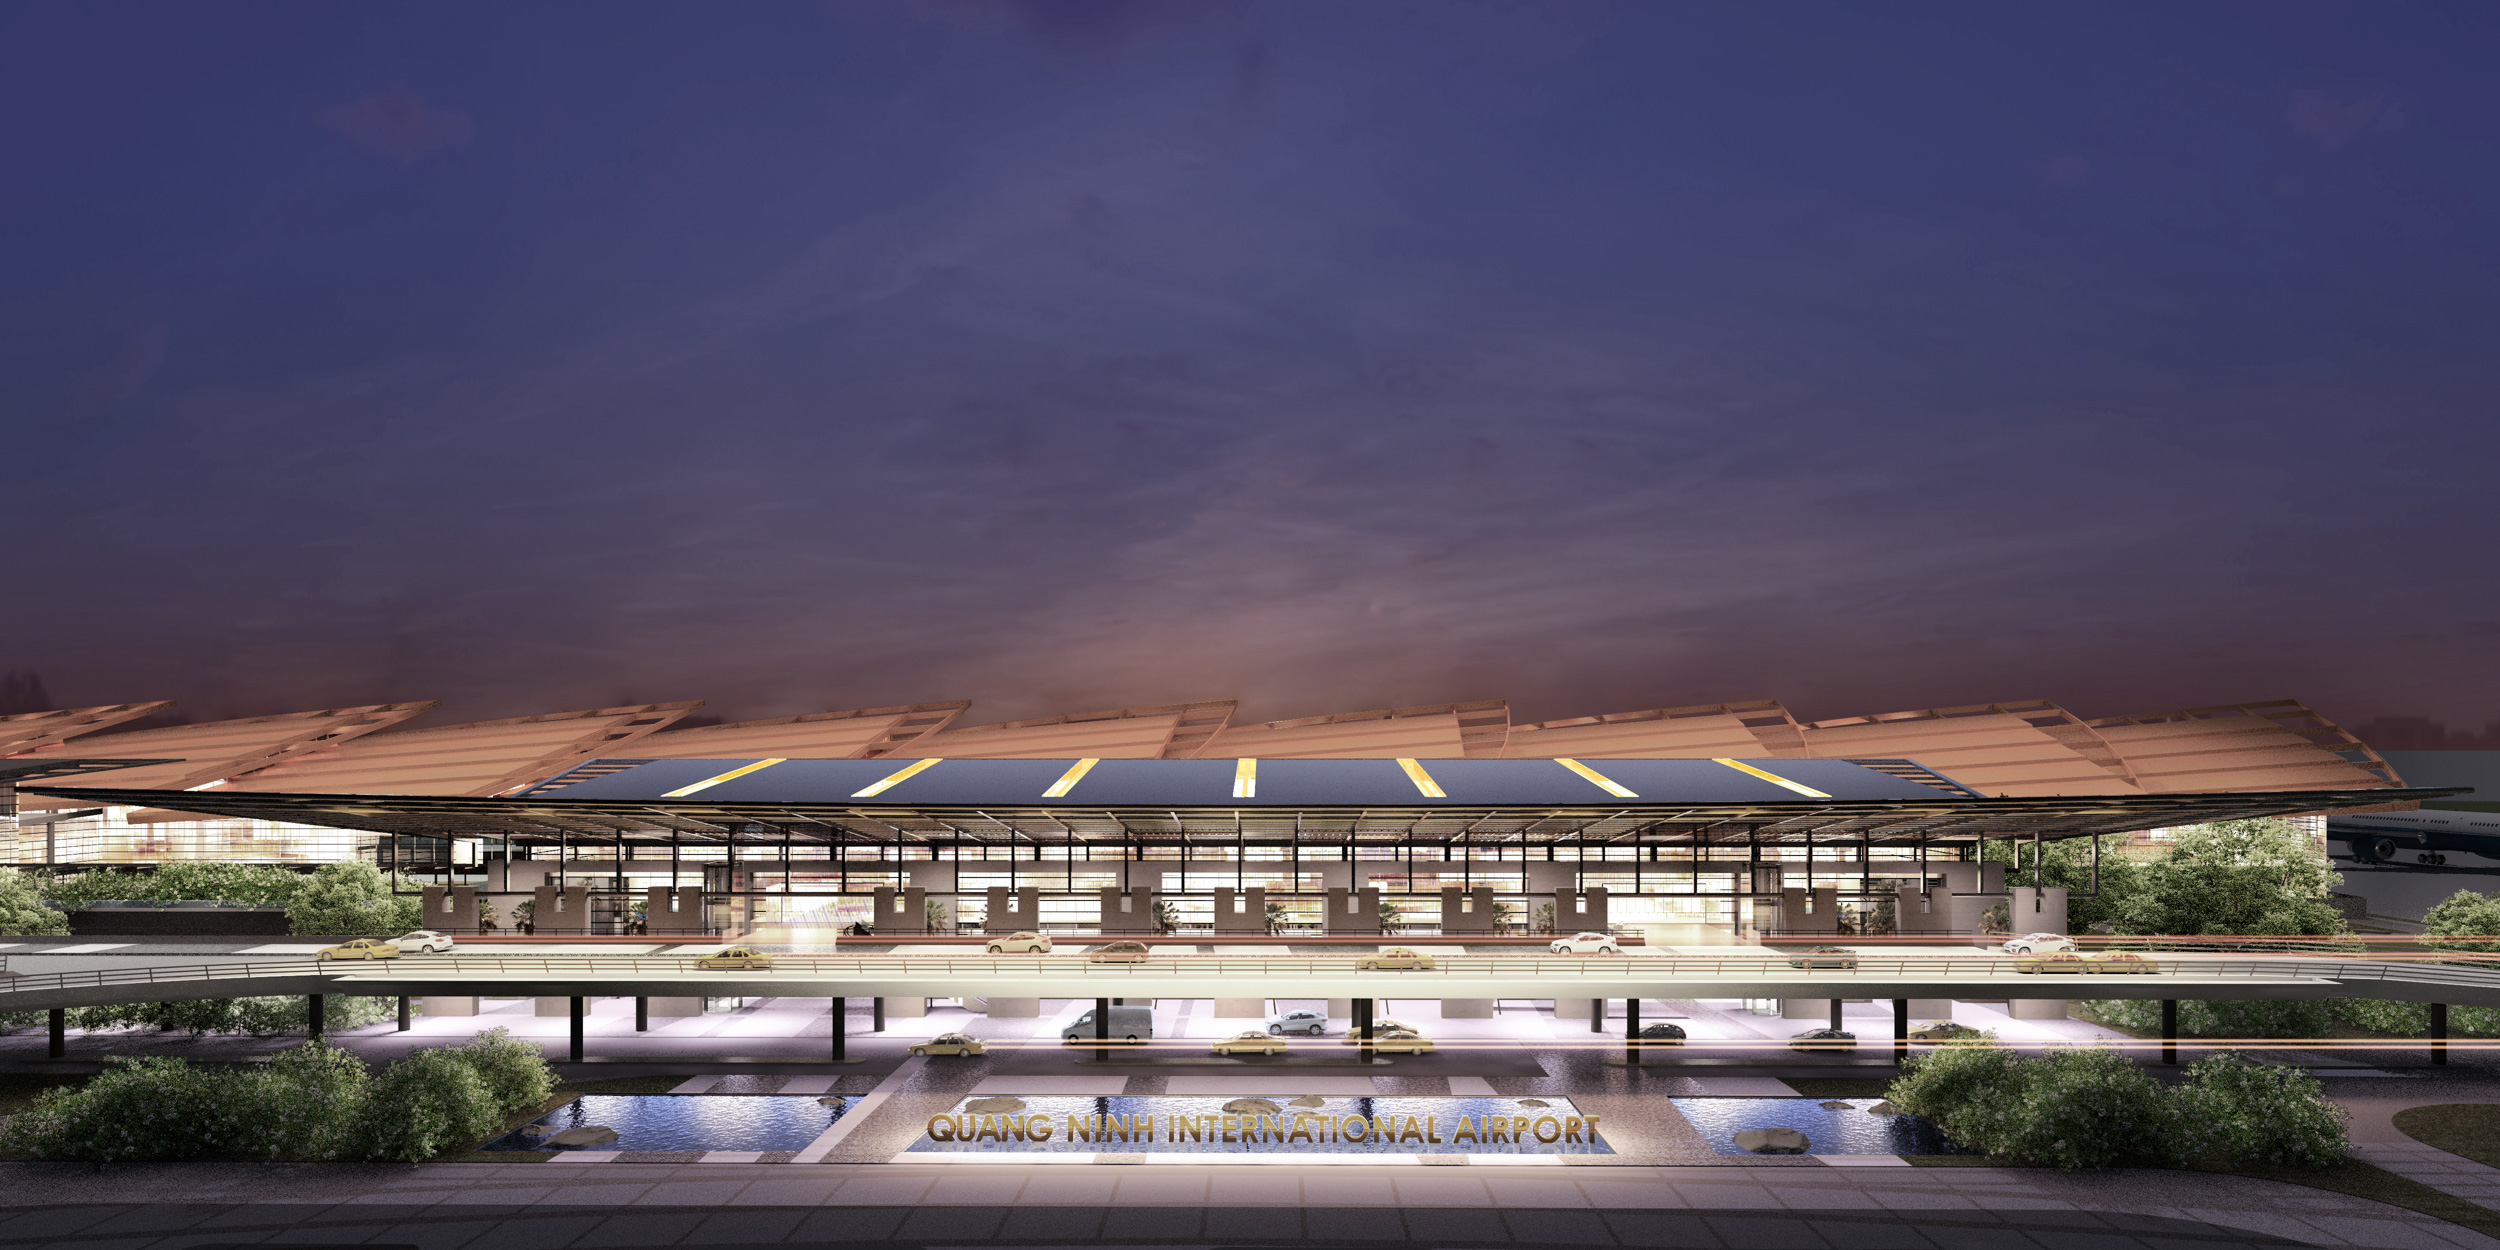 Vietnam Airport Scheme 5_building_05night_Cam1 a-web.jpg